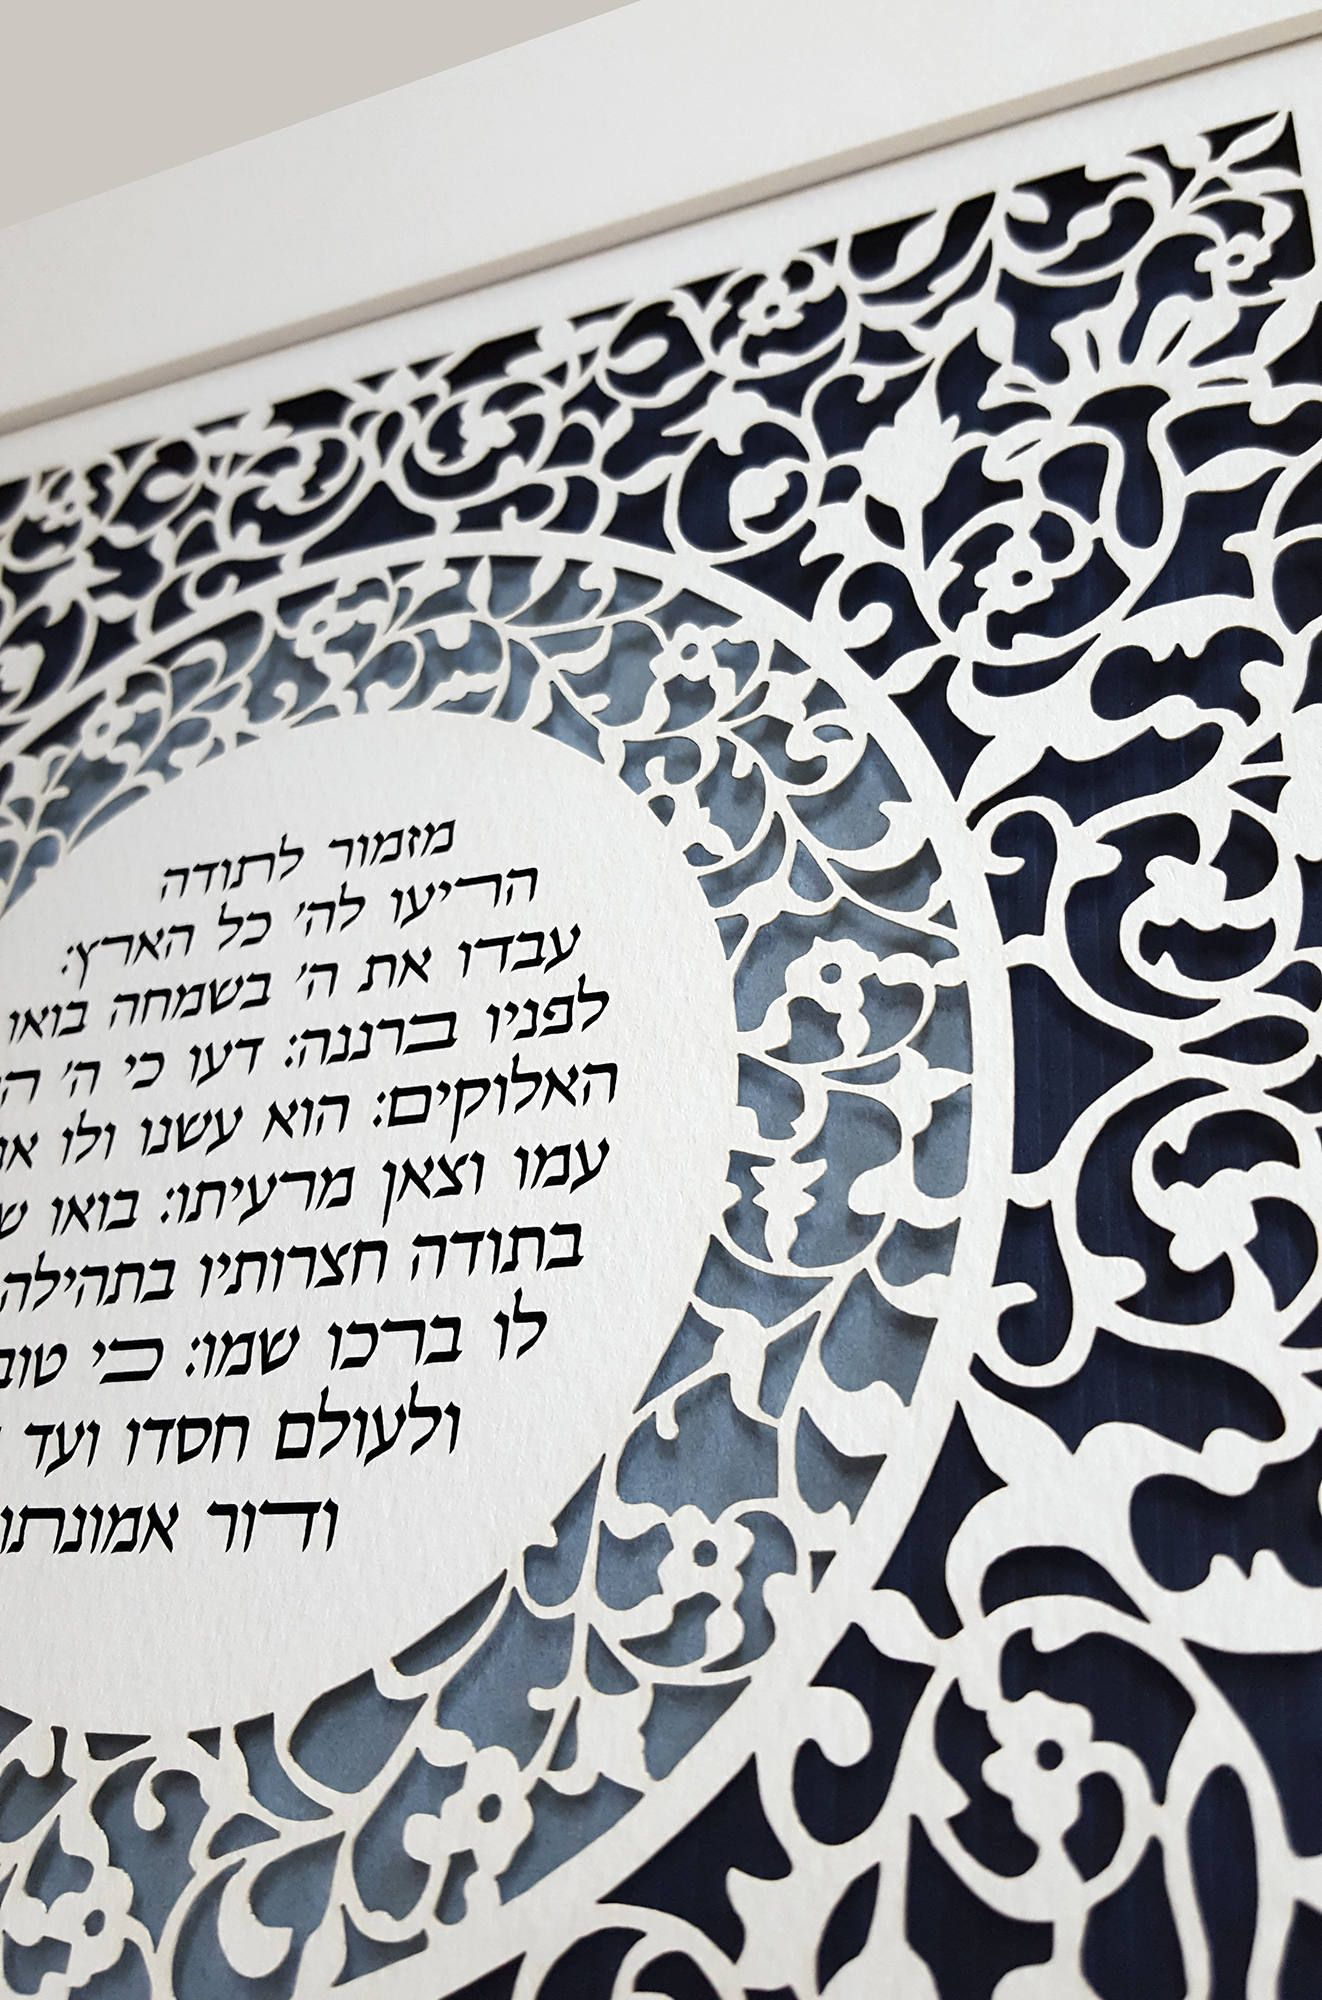 Pin On All About Jewish Life